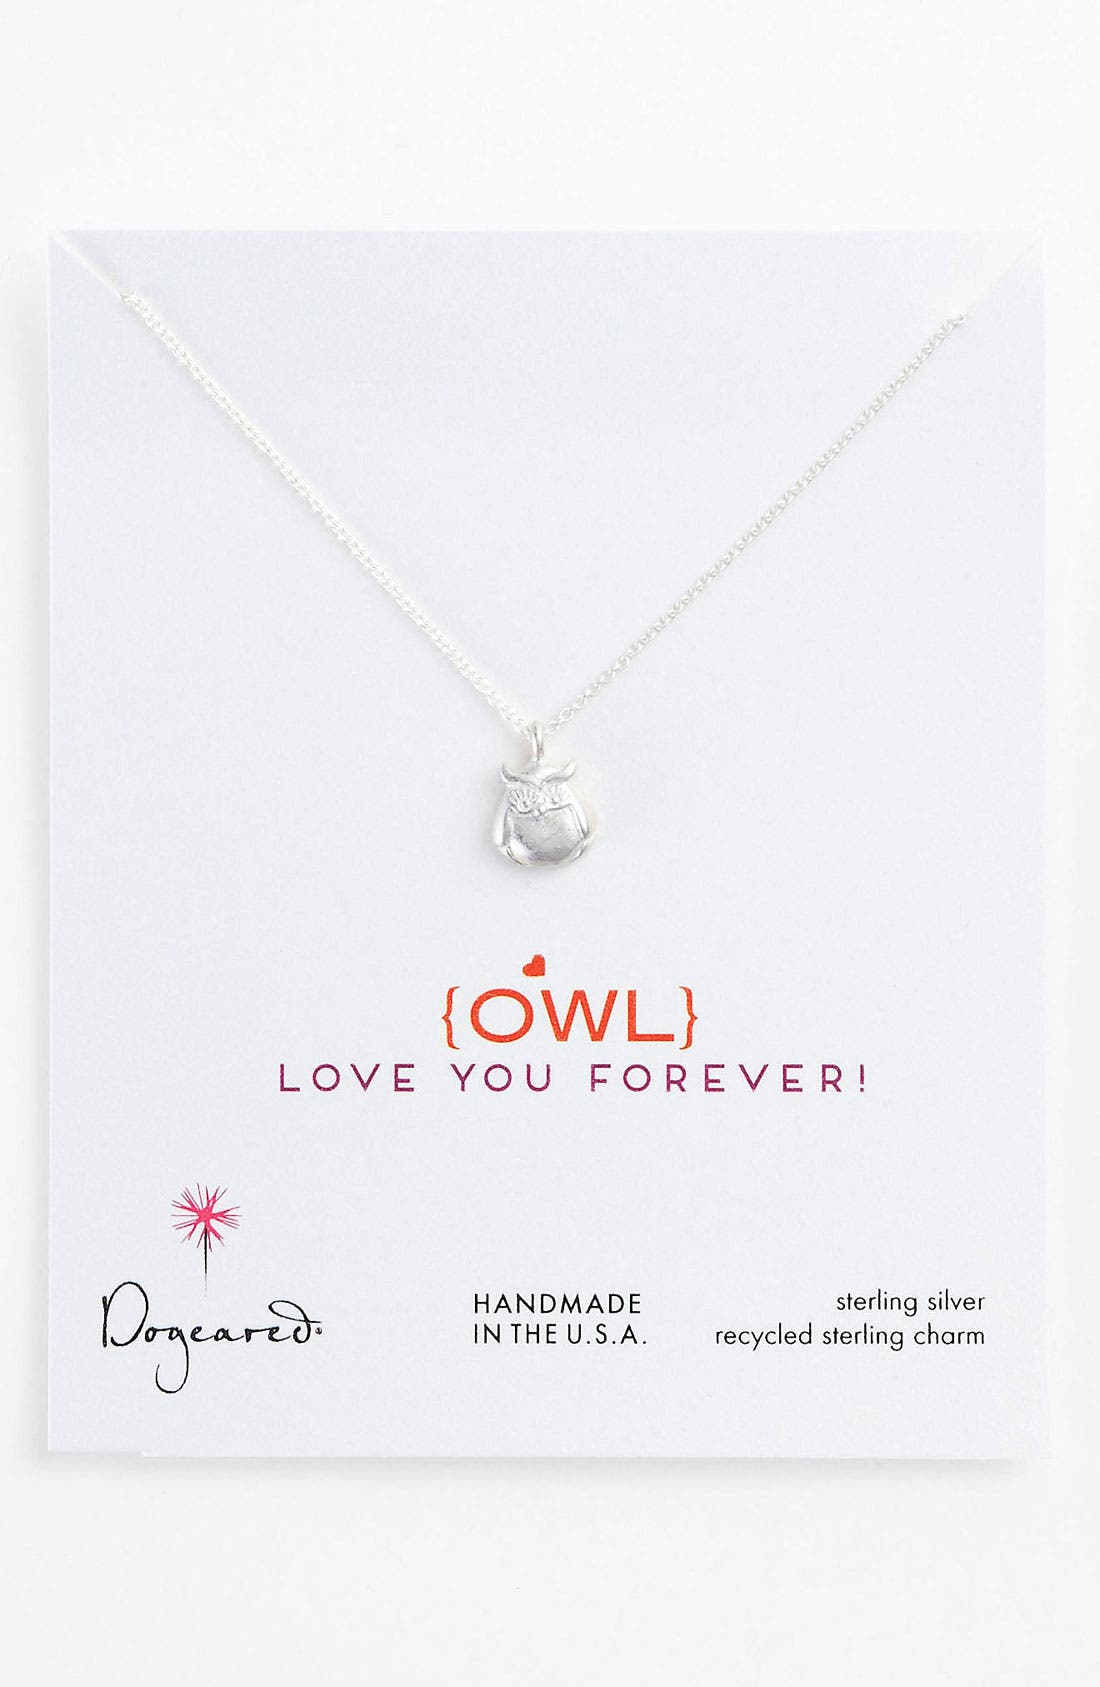 Alternate Image 1 Selected - Dogeared 'Owl Love You Forever' Pendant Necklace